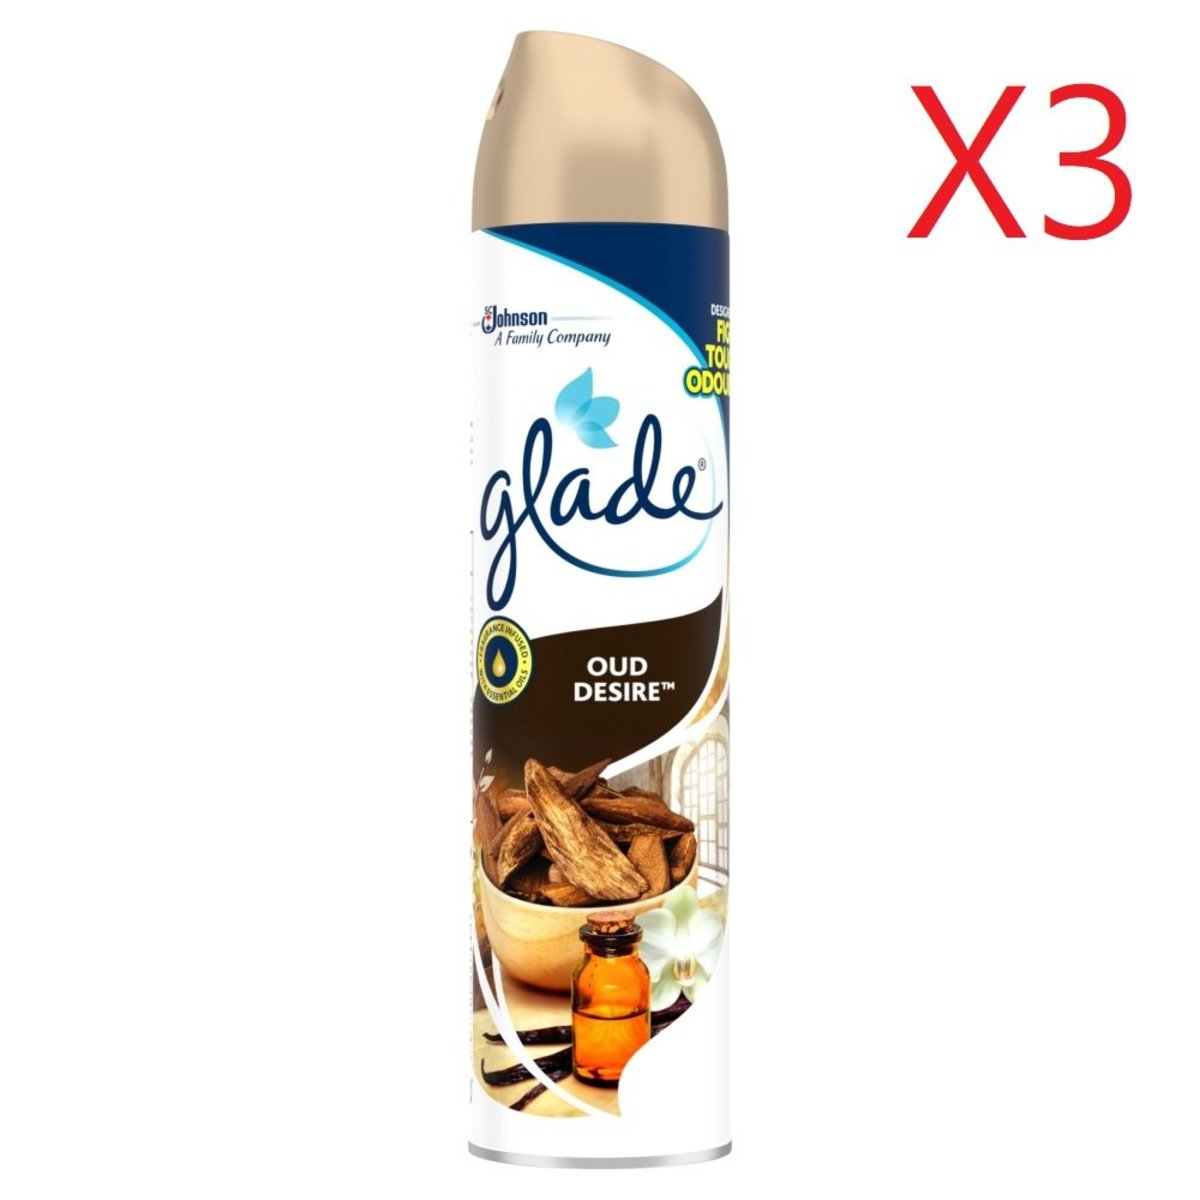 Glade Air Refresher Spray 300ml - OUD Desire X3 [Parallel Import Product]